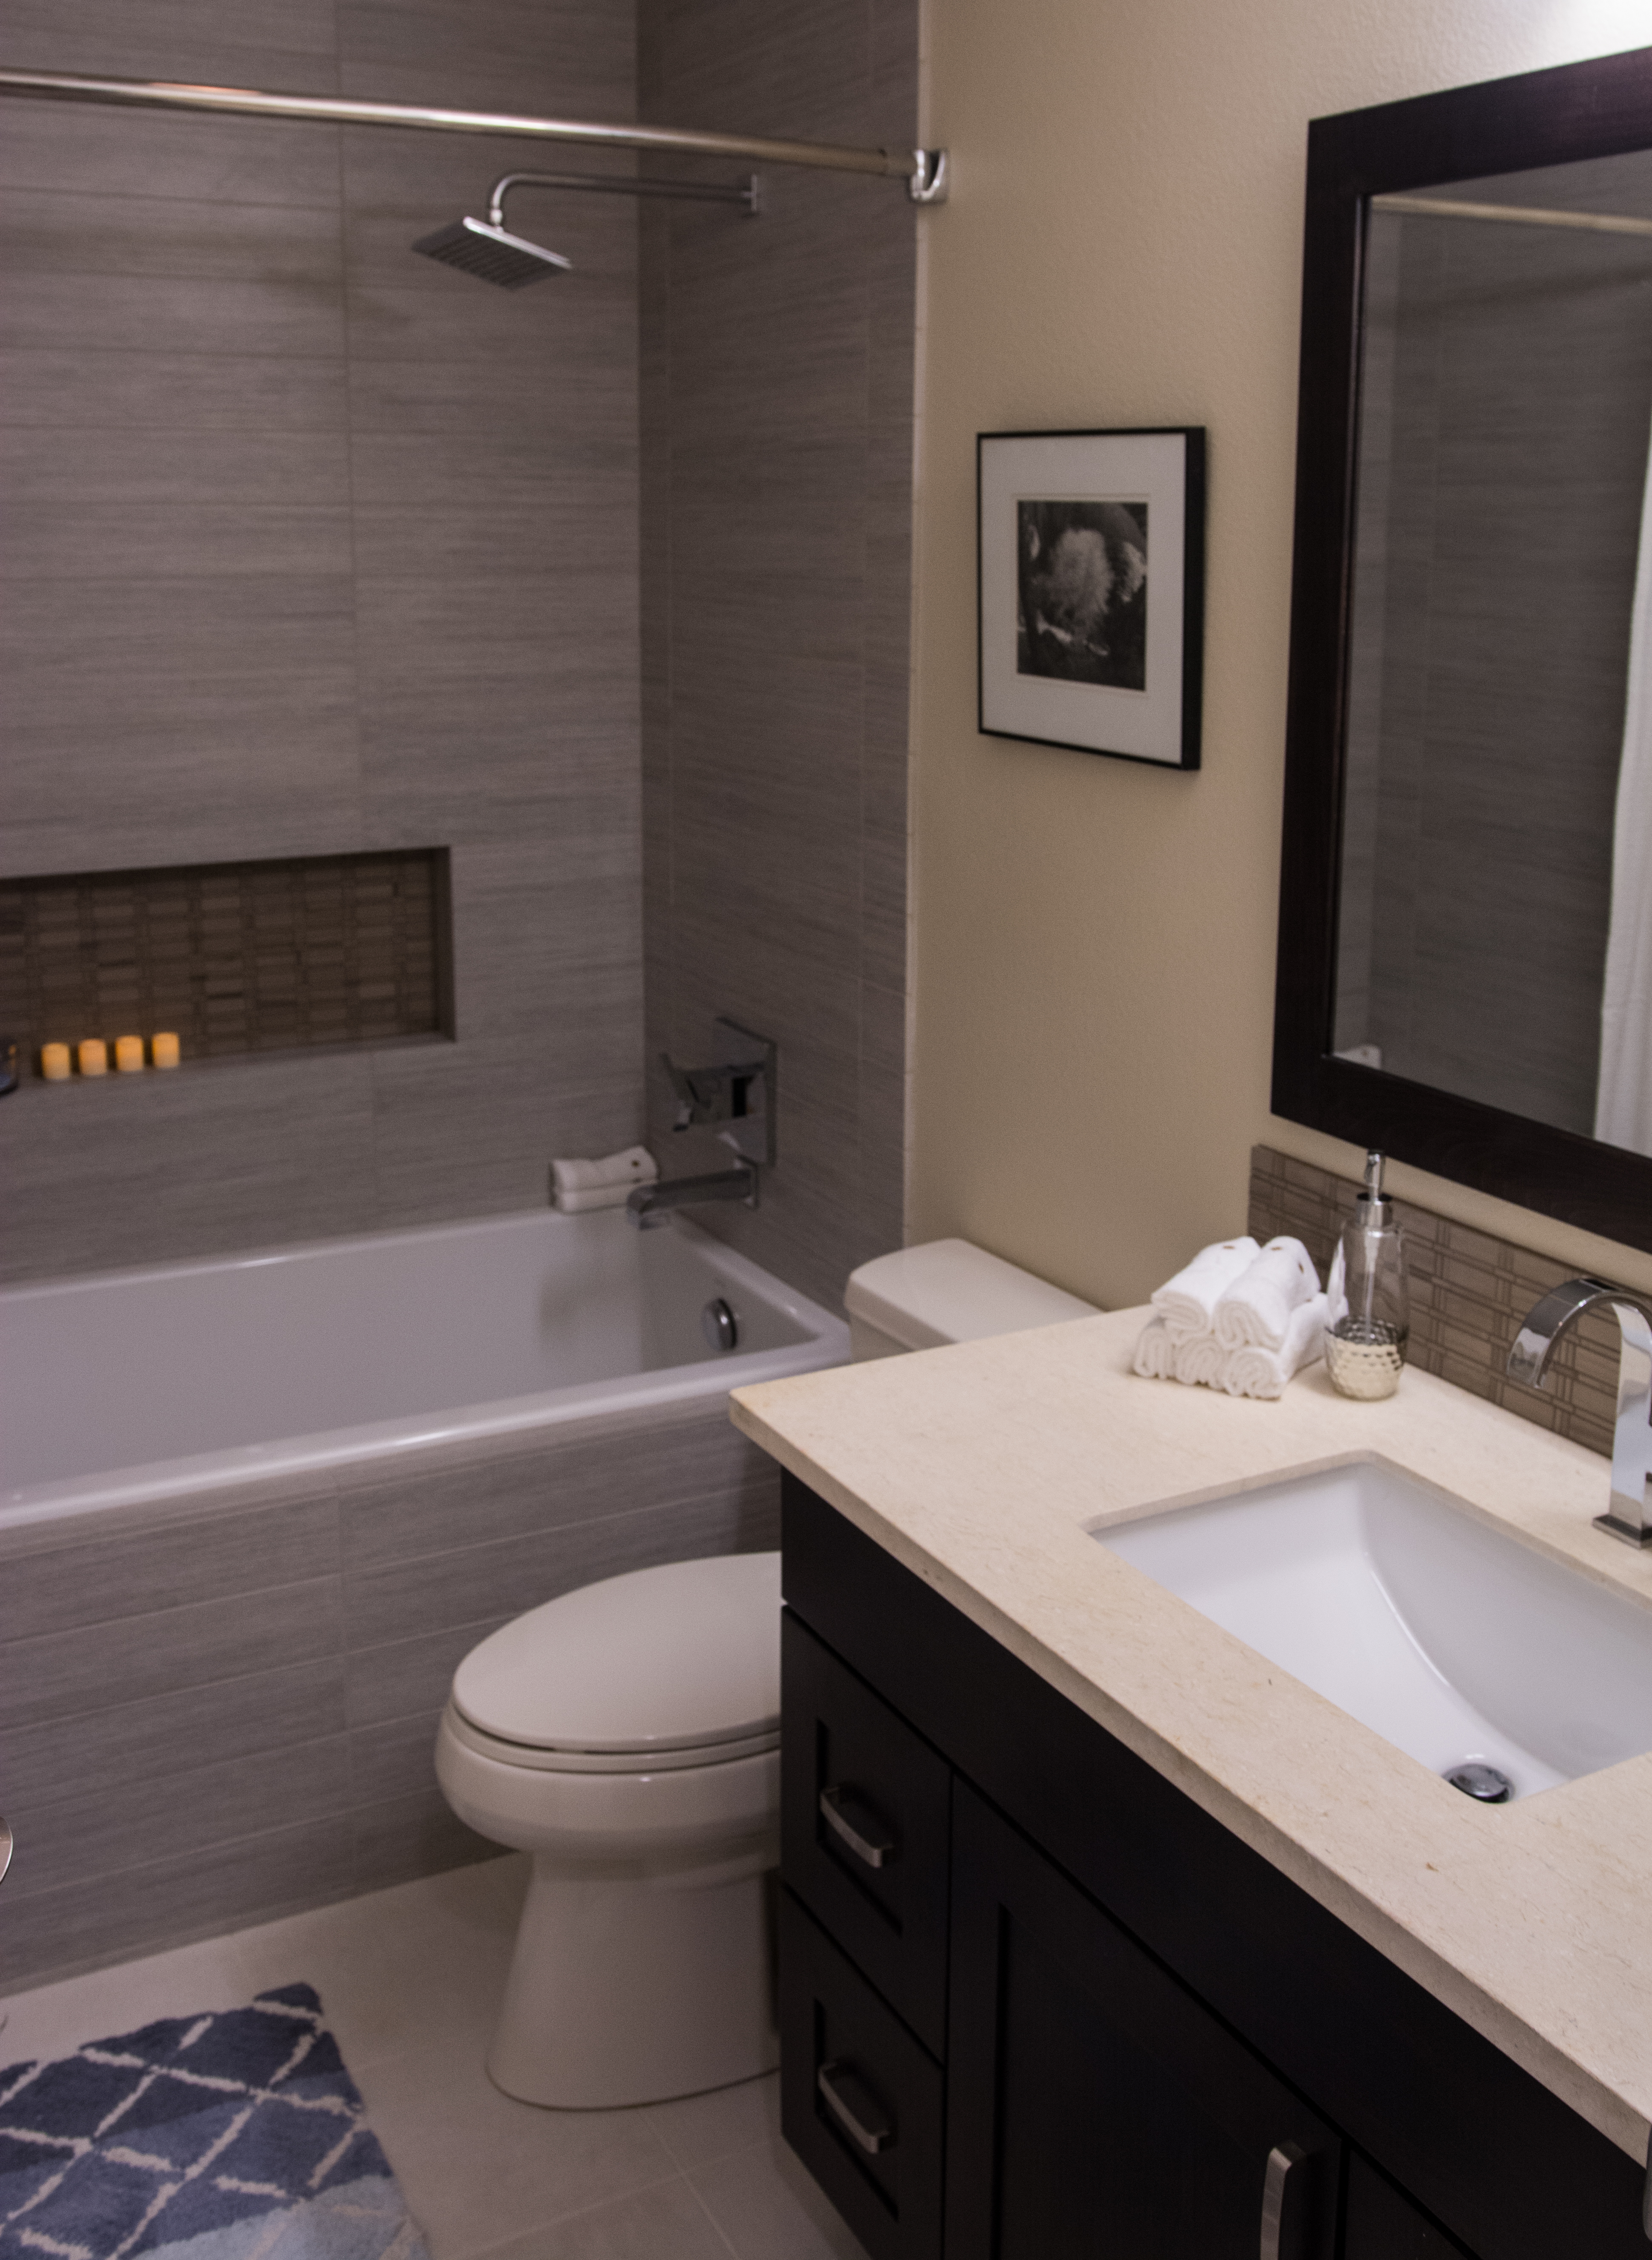 Interior Design Seattle Bathroom Remodel - Bathroom remodel ideas 2014